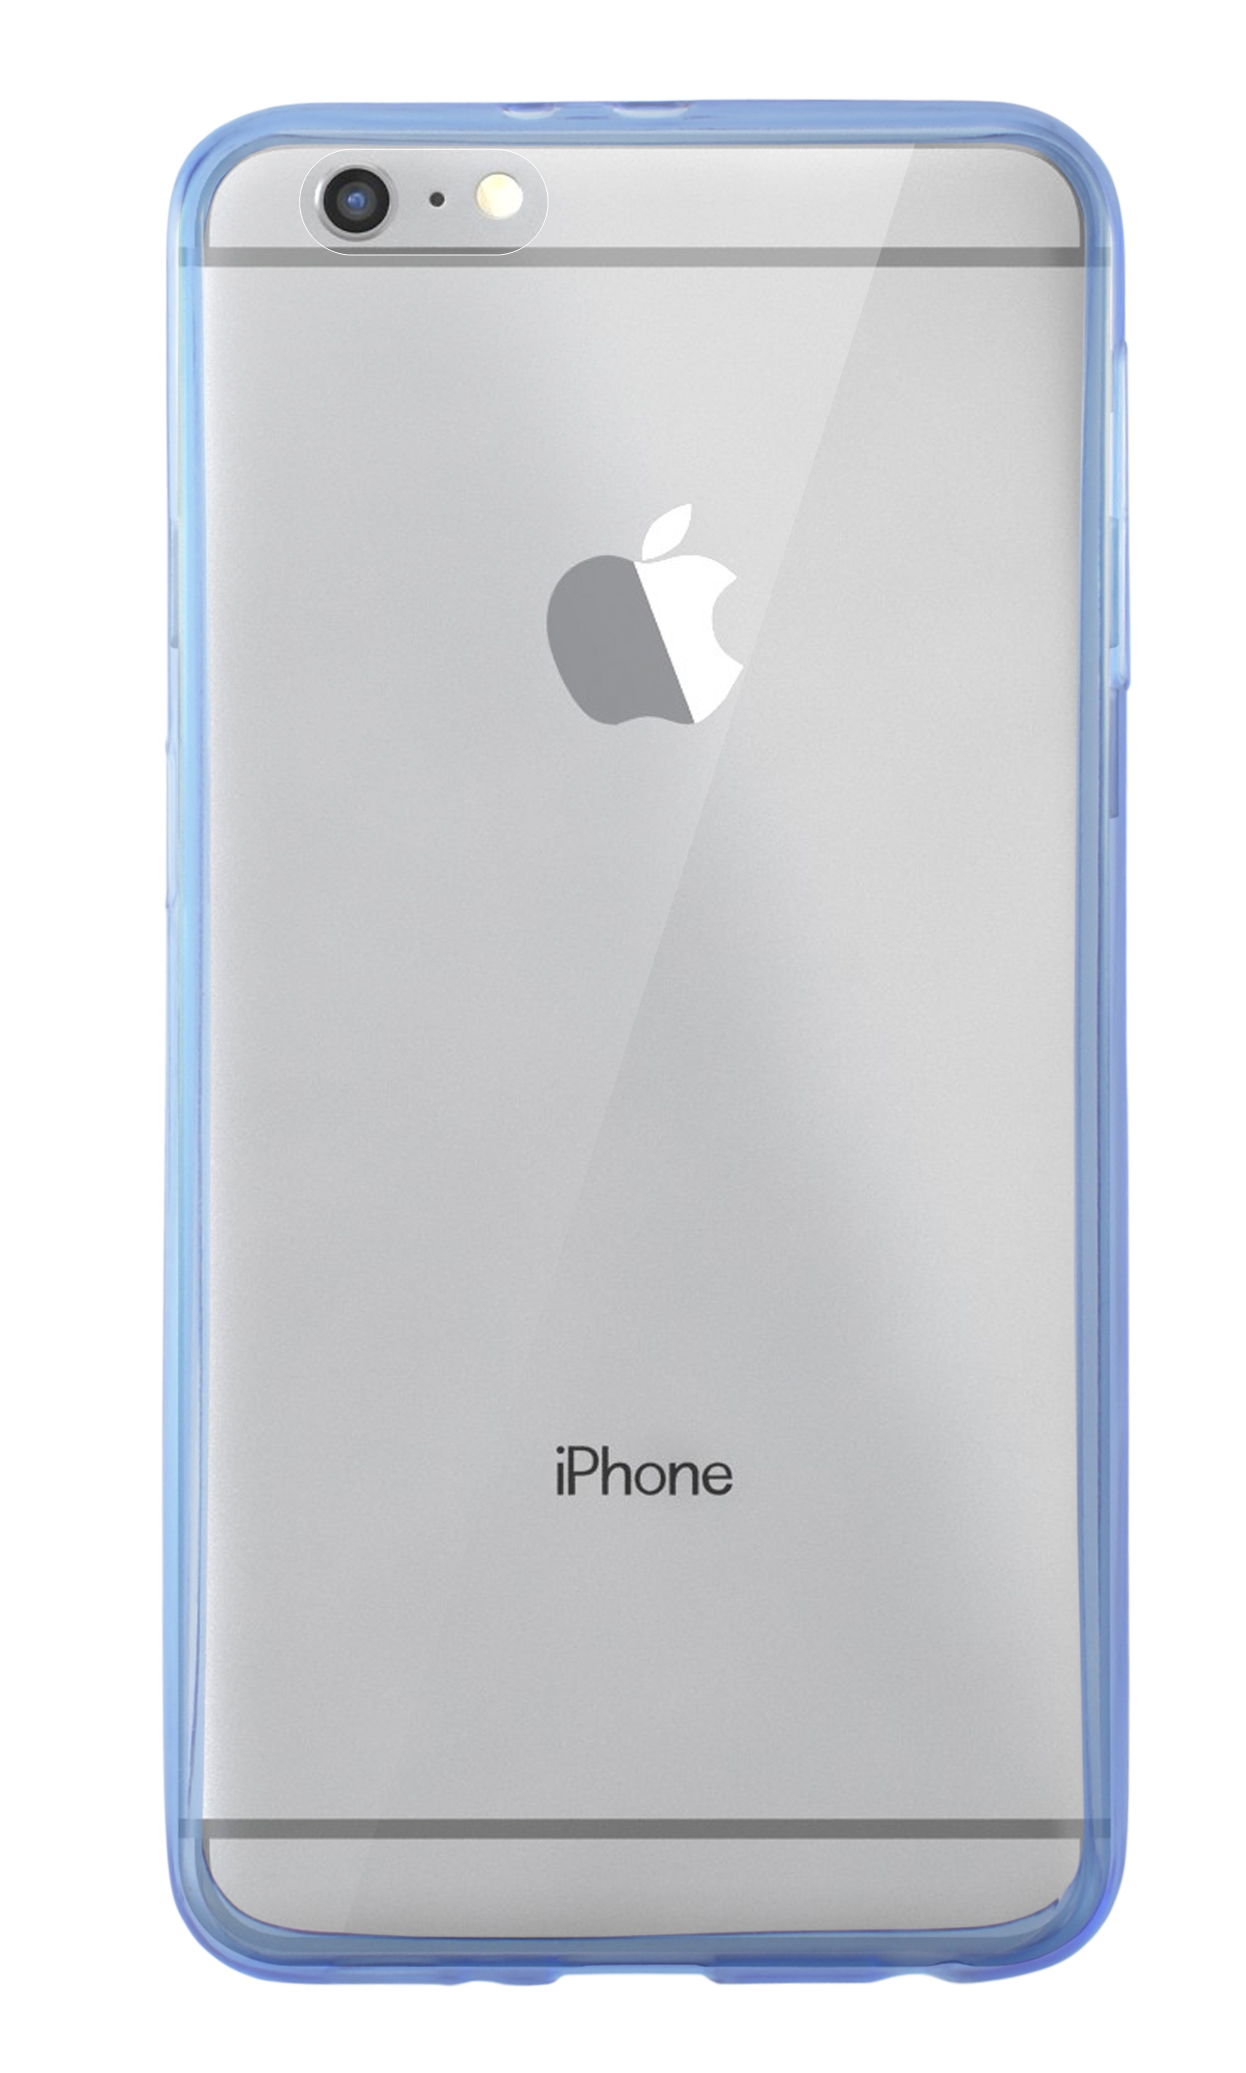 Comprar funda de silicona rigida transparente iphone 6 azul a 4 01 iphone 4 4s 5 5c 5s 6 - Fundas iphone silicona ...